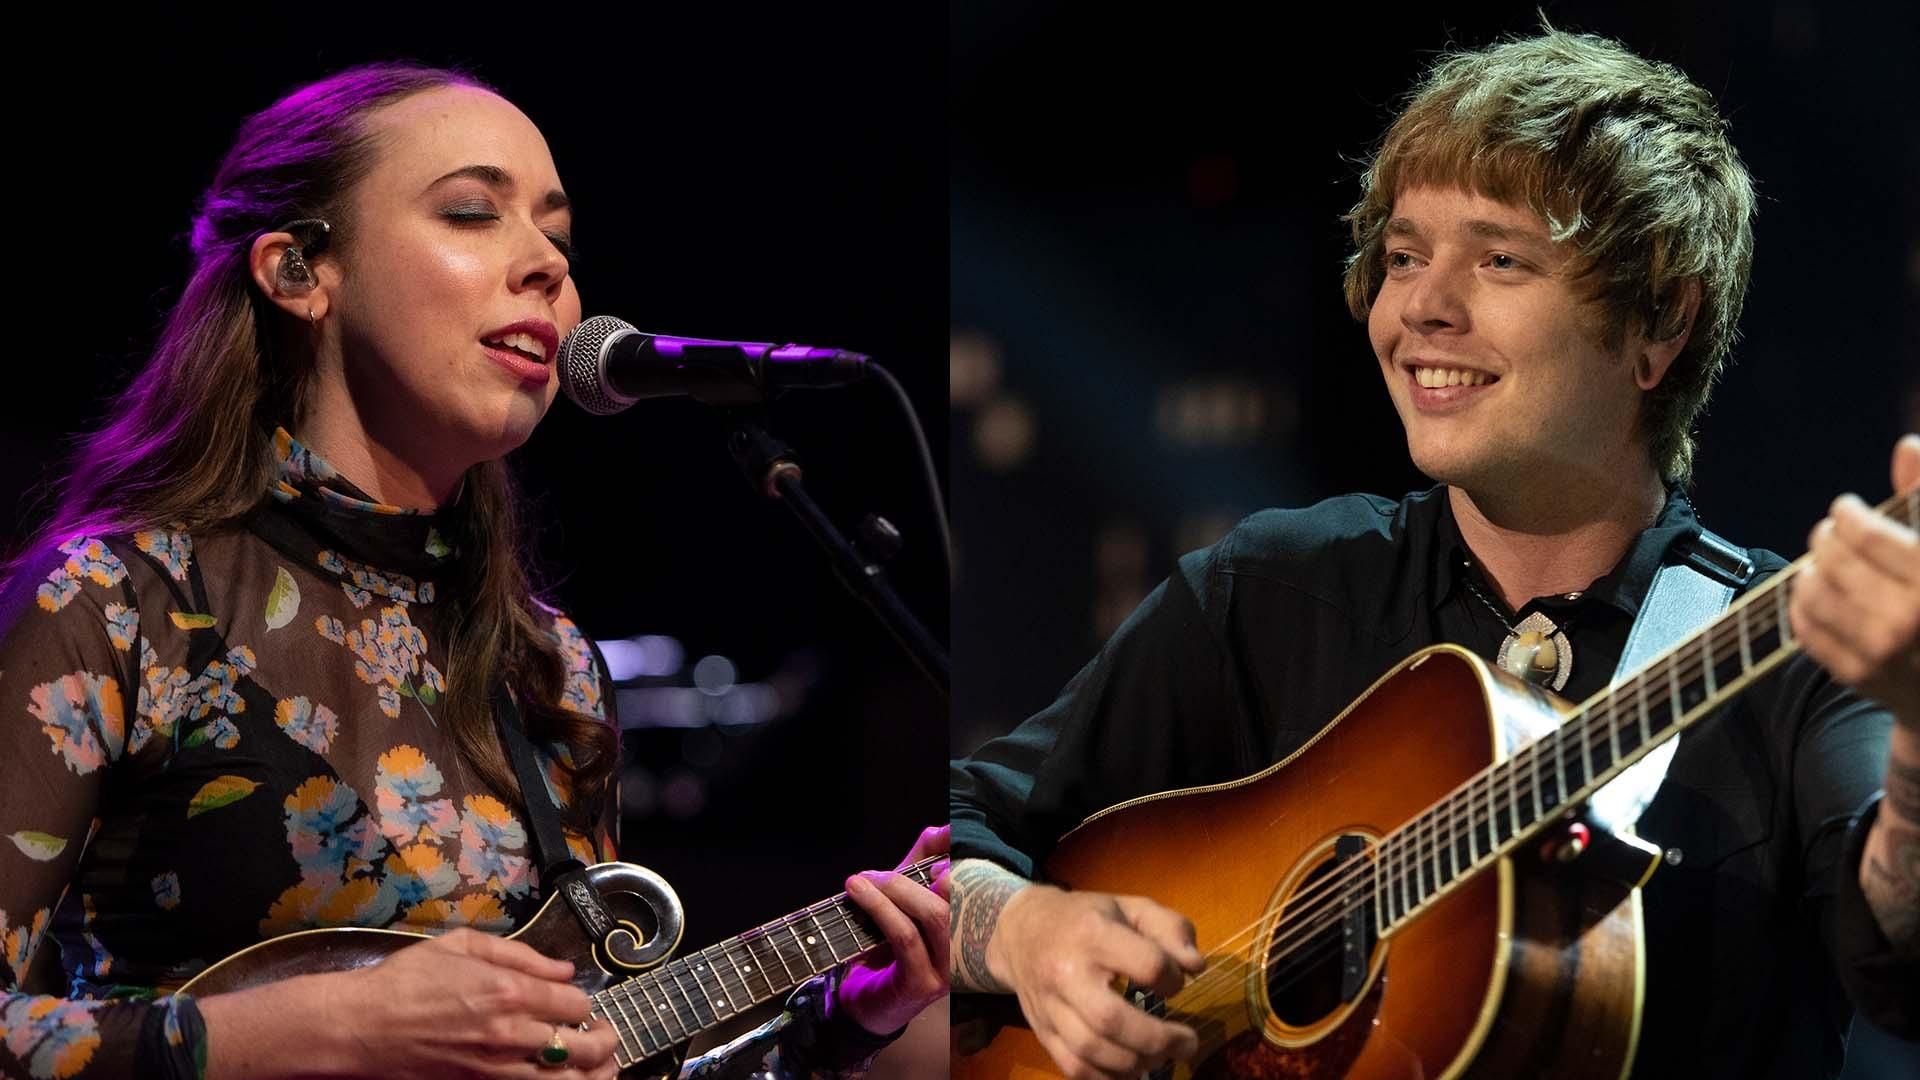 Photos of Sarah Jarosz and Billy Strings singing and playing guitar on stage